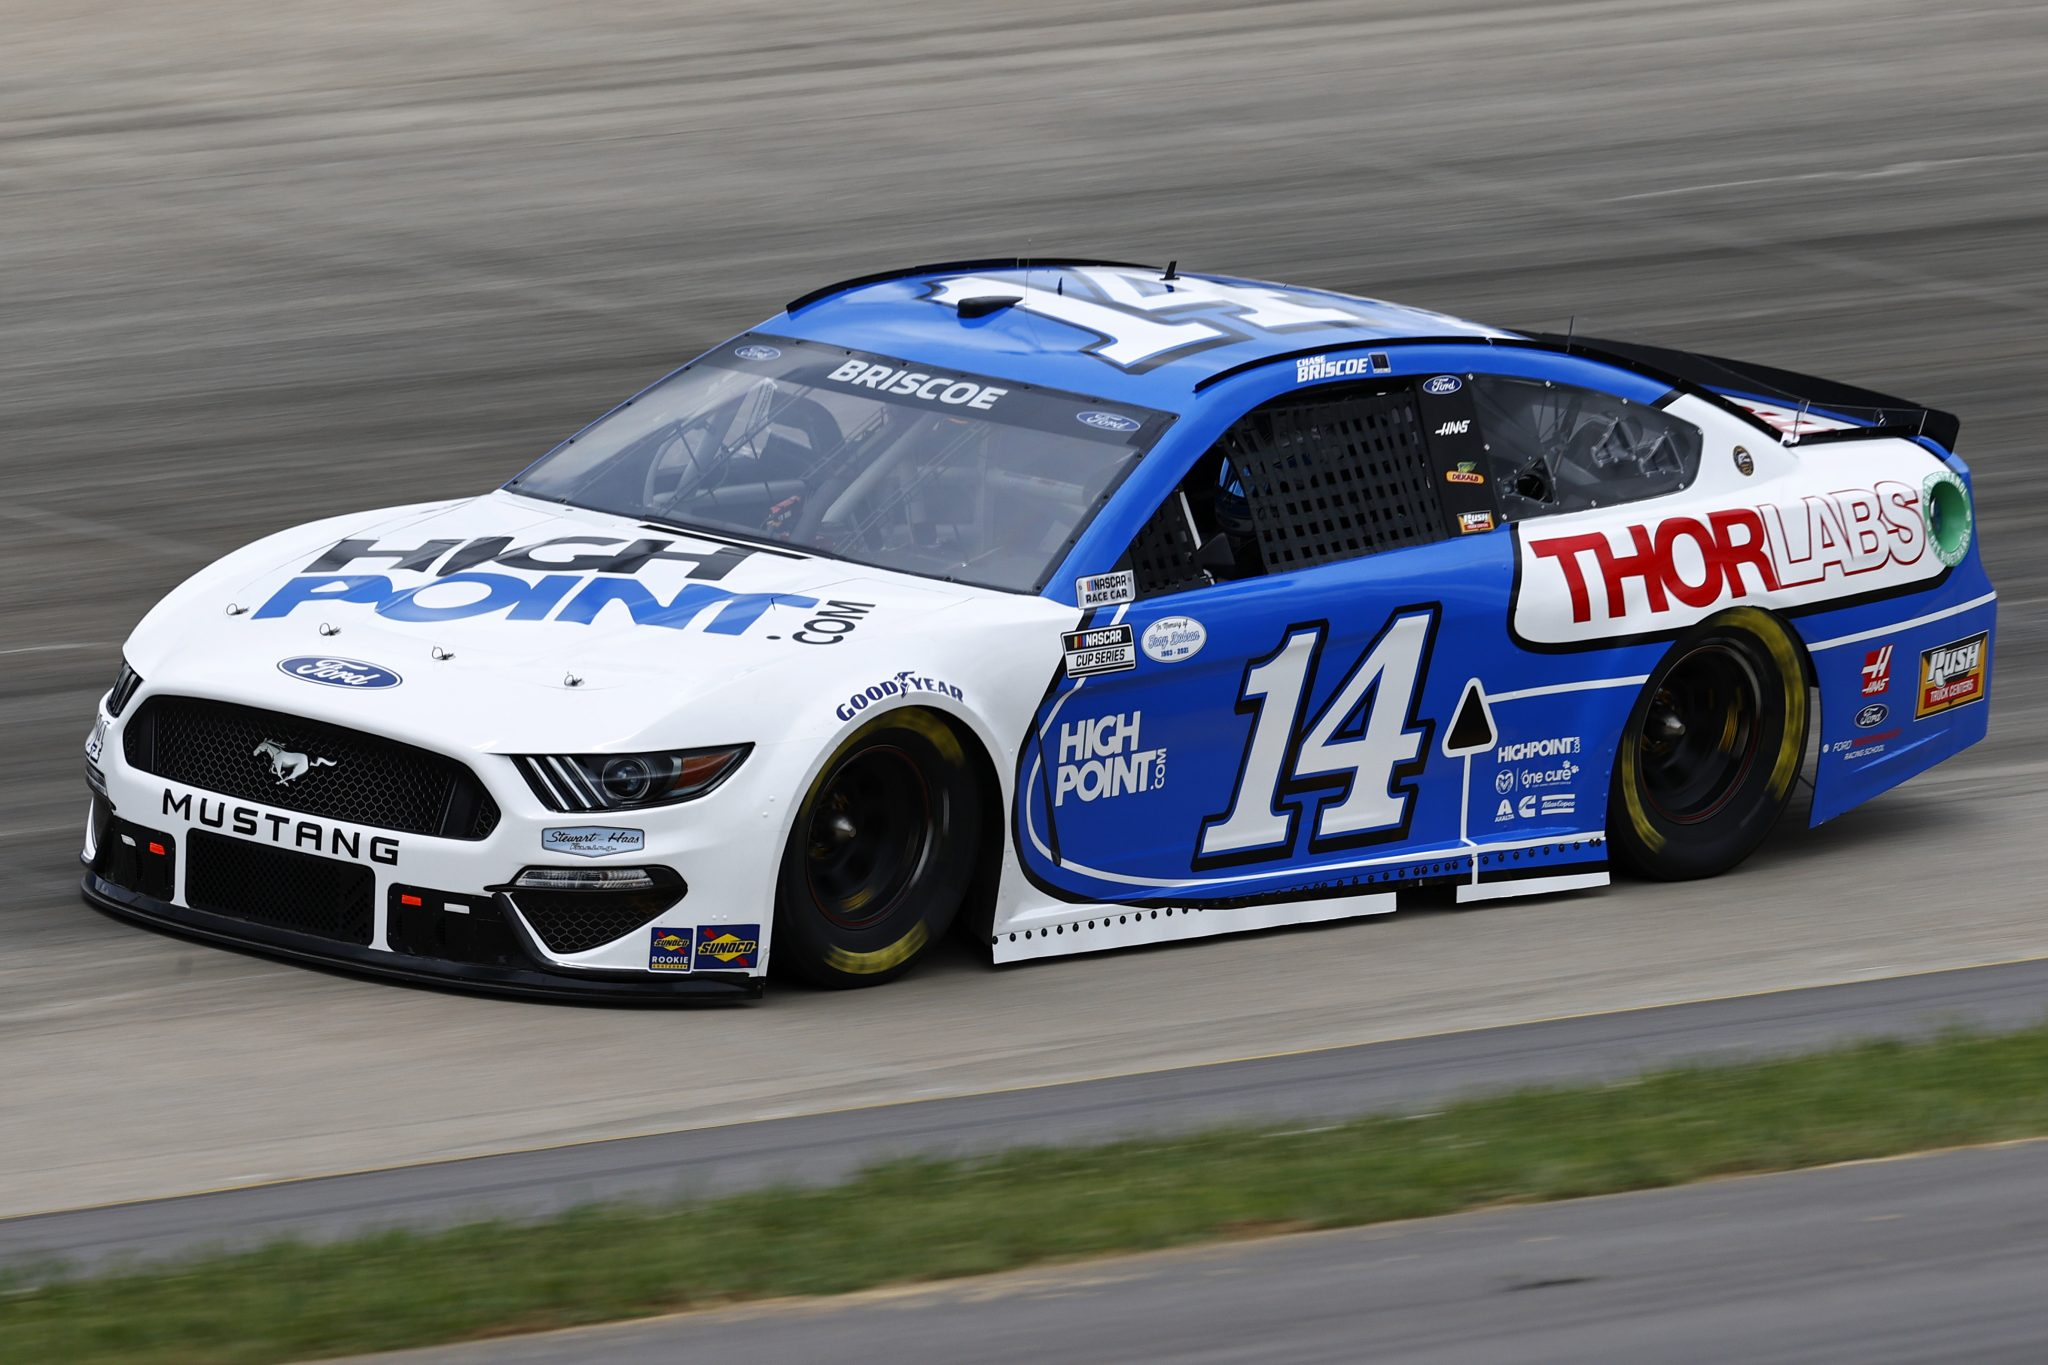 LEBANON, TENNESSEE - JUNE 19: Chase Briscoe, driver of the #14 HighPoint.com/Thorlabs Ford, drives during practice for the NASCAR Cup Series Ally 400 at Nashville Superspeedway on June 19, 2021 in Lebanon, Tennessee. (Photo by Jared C. Tilton/Getty Images)   Getty Images